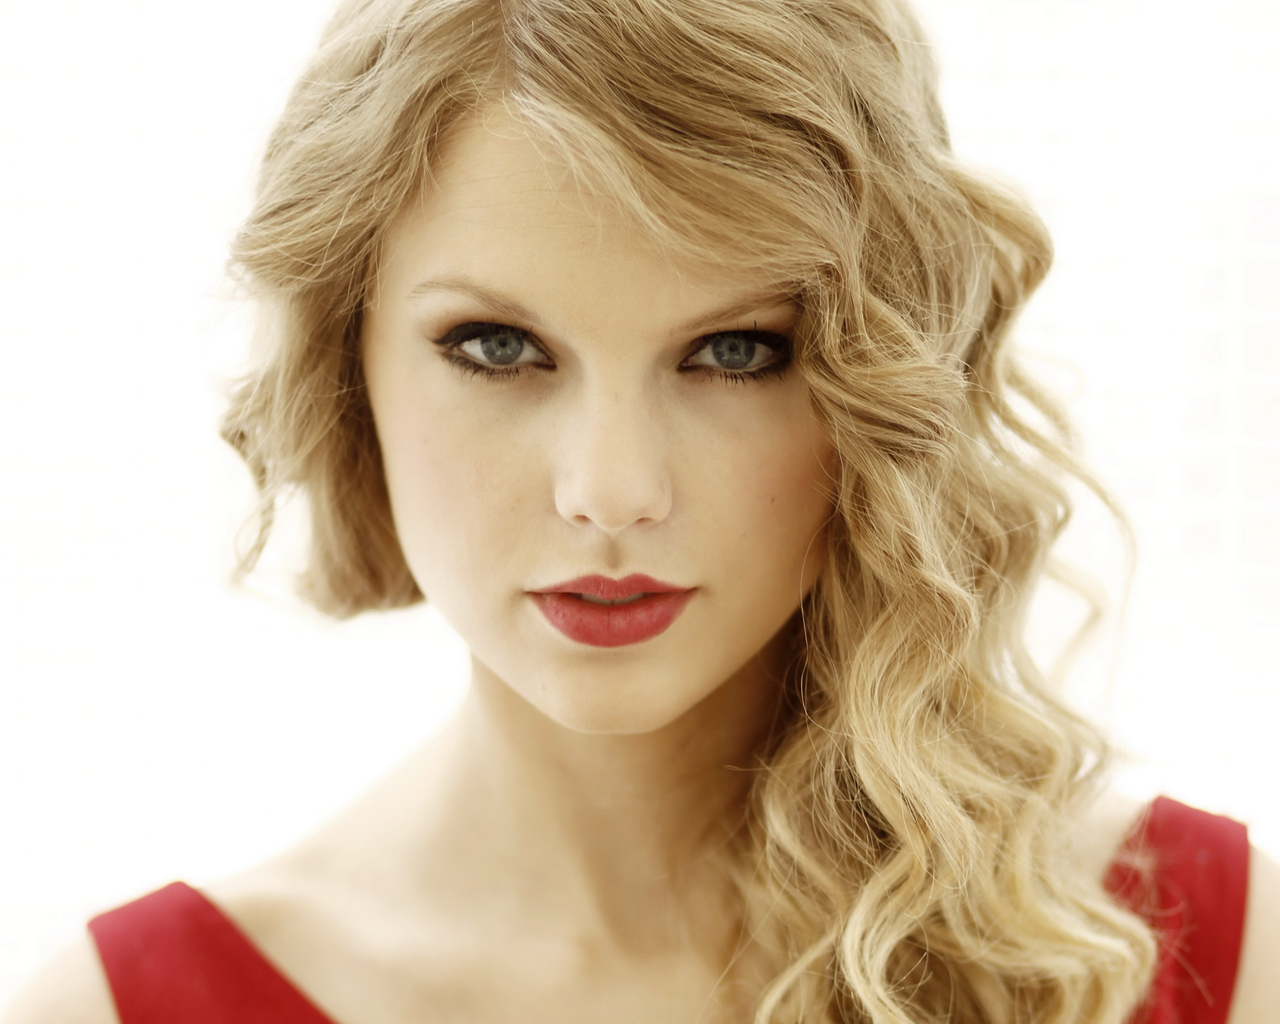 Taylor Swift Announces Croke Park Gig